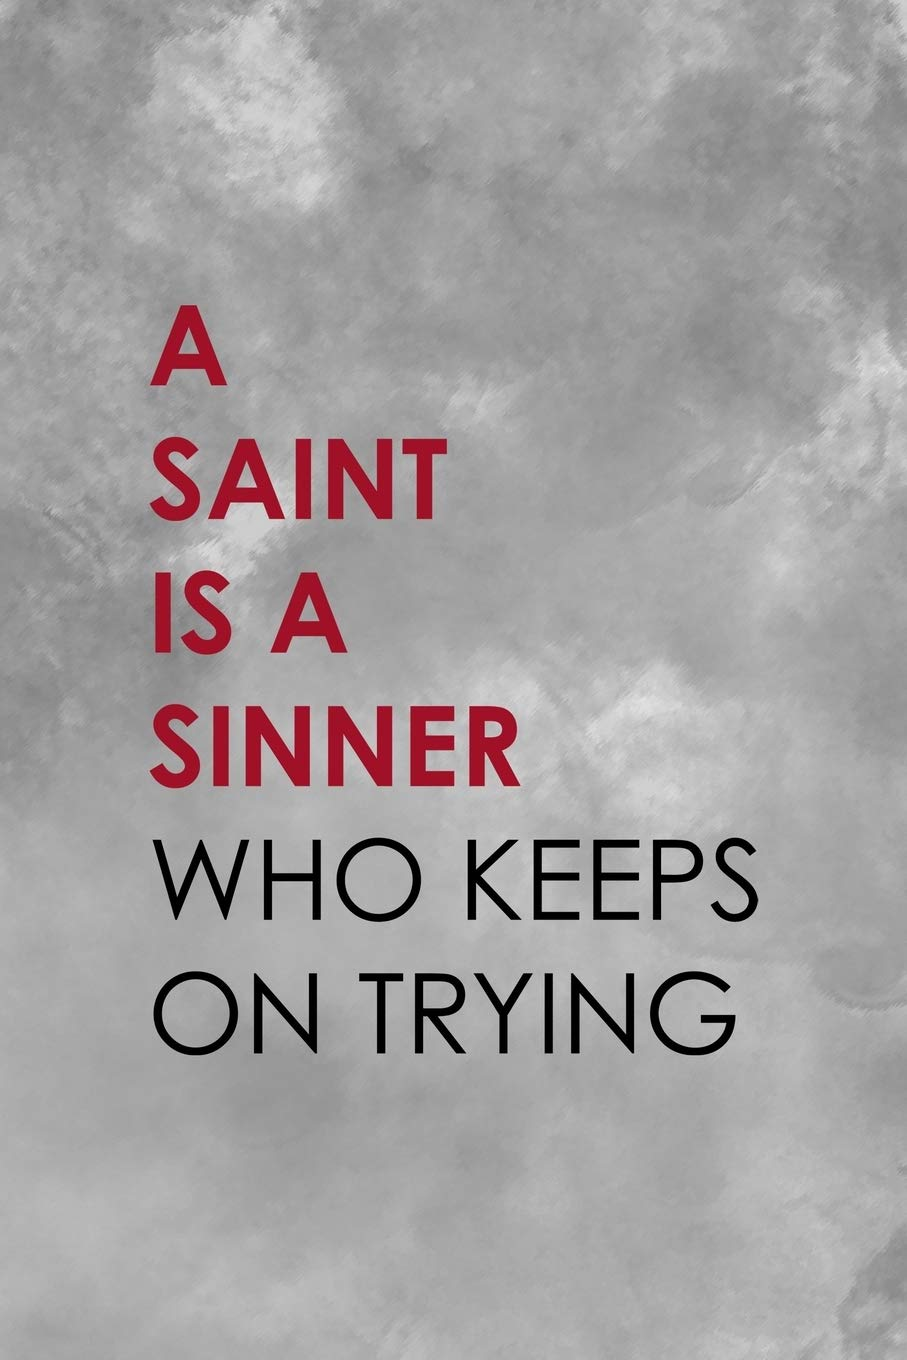 Buy A Saint Is A Sinner Who Keeps On Trying Notebook Journal Composition Blank Lined Diary Notepad 120 Pages Paperback Grey Texture Sinner Book Online At Low Prices In India A